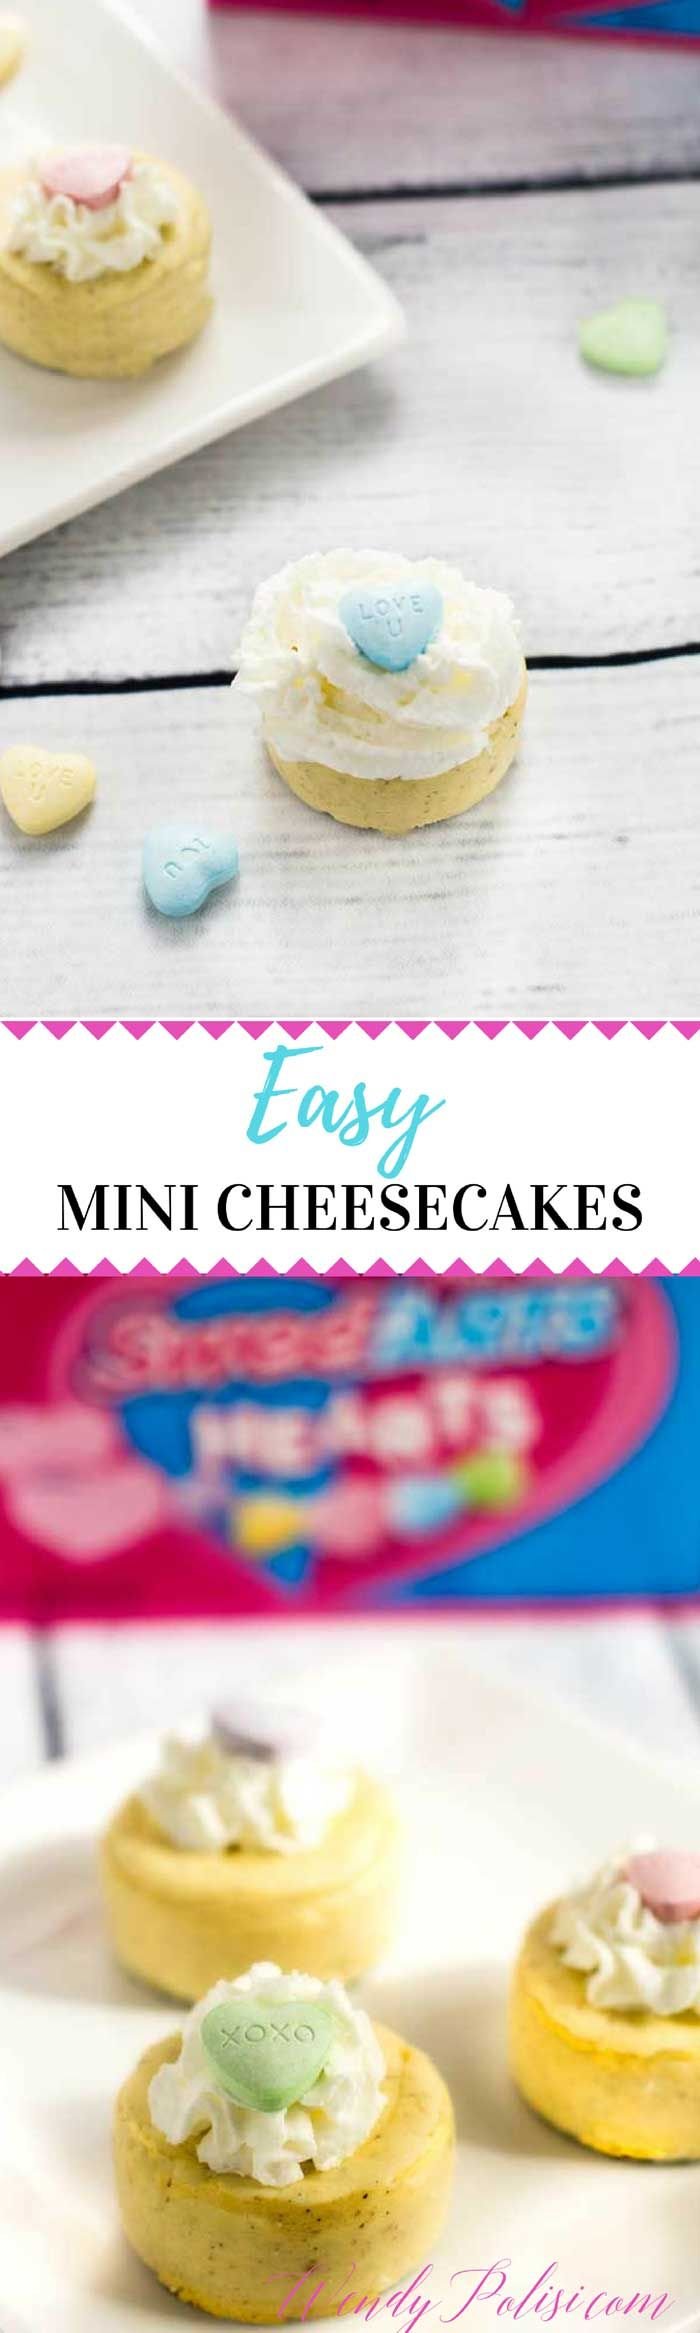 Easy Mini Cheesecakes - Perfect for Valentines Day!  How can you share your love this Valentine's Day? With @SweeTARTS Hearts and Soft & Chewy Ropes! More than just a tasty treat, these Valentine's Day classics are the perfect way to spread the love! #ad